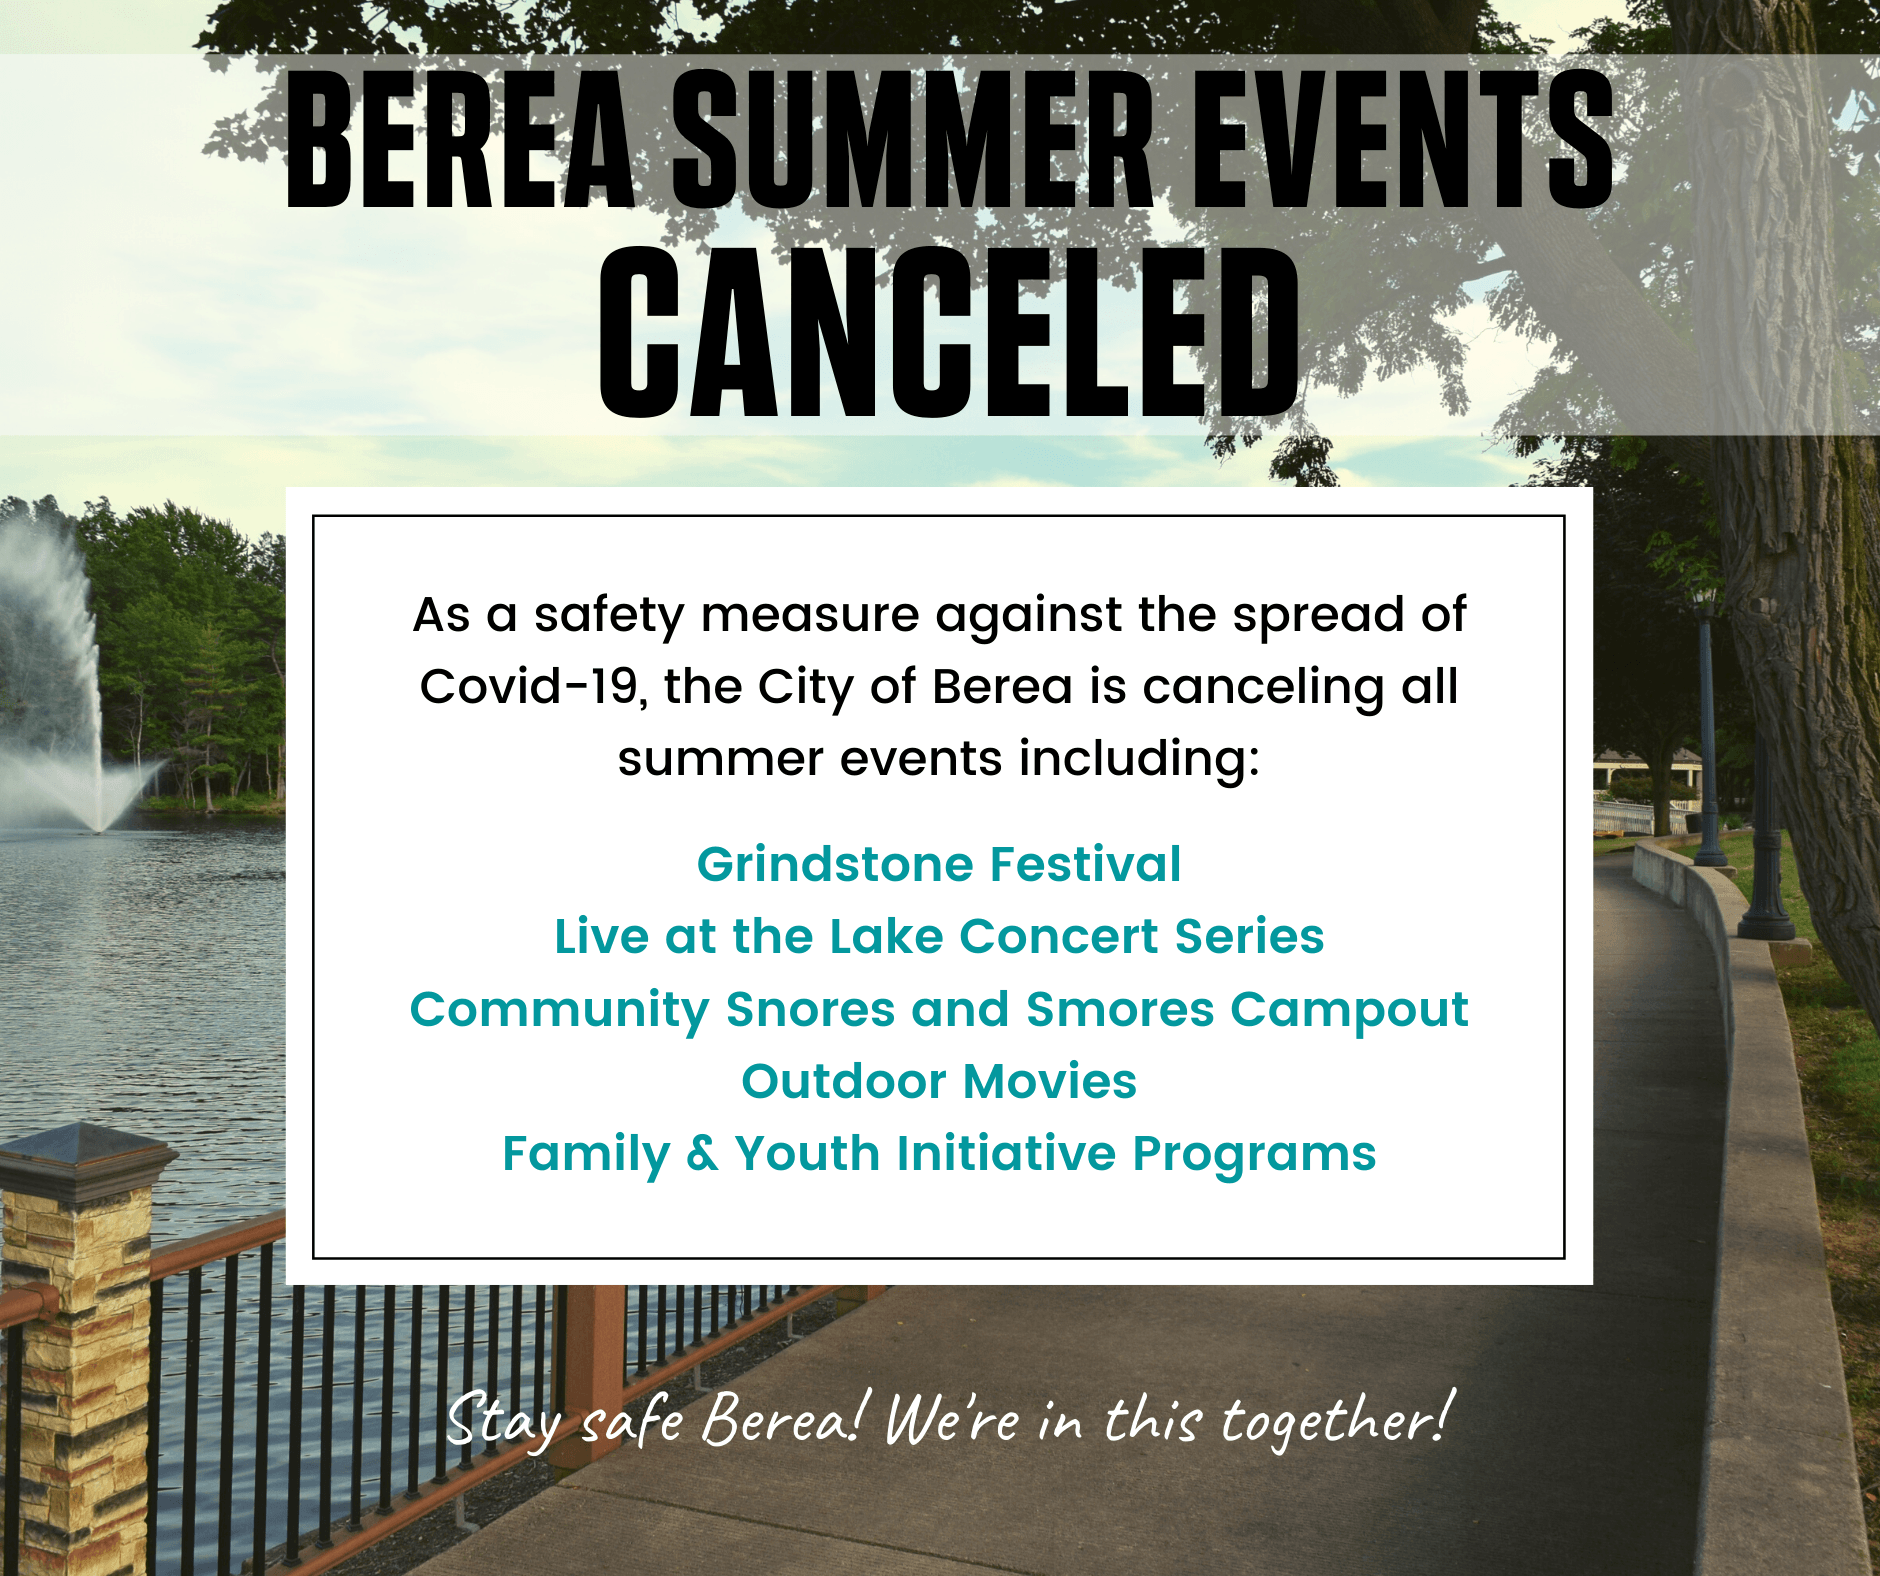 summer events canceled ad